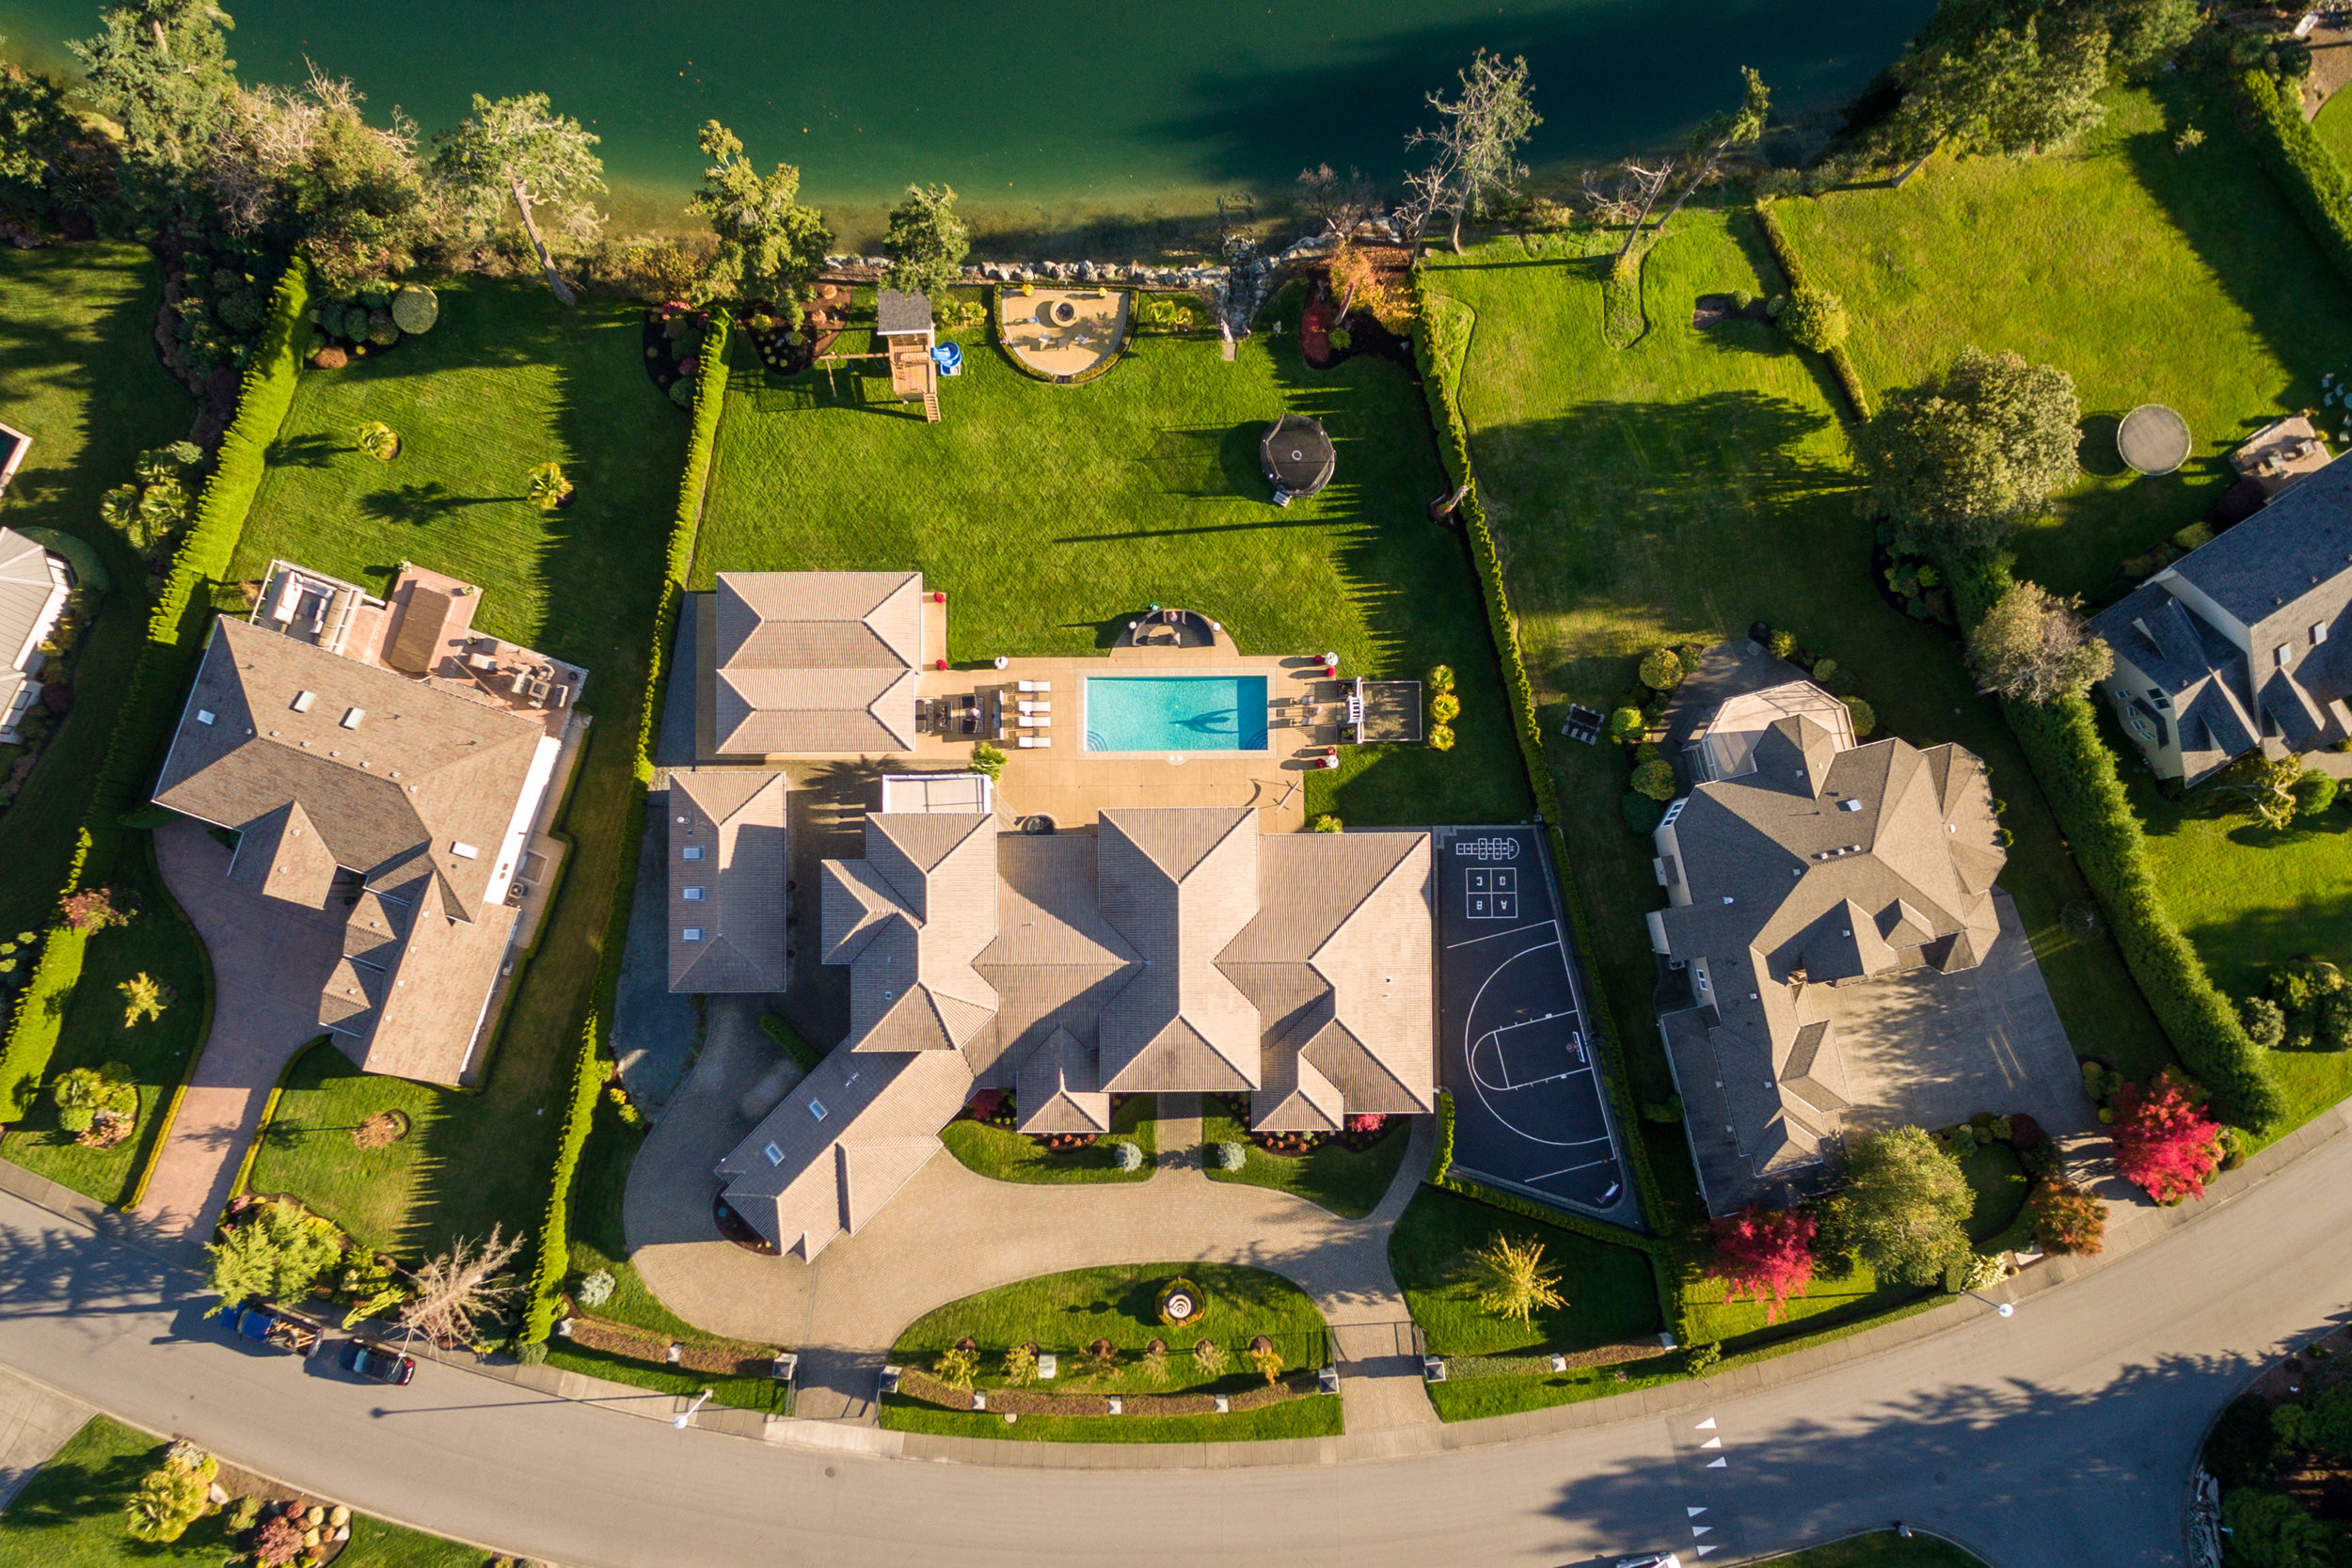 Mini Listing Sites - Imagine having your listing photos, video, floor plan and interactive map all in one place. One link, showcasing your listing features and branding, easily accessible on all devices ~ anytime, anywhere.